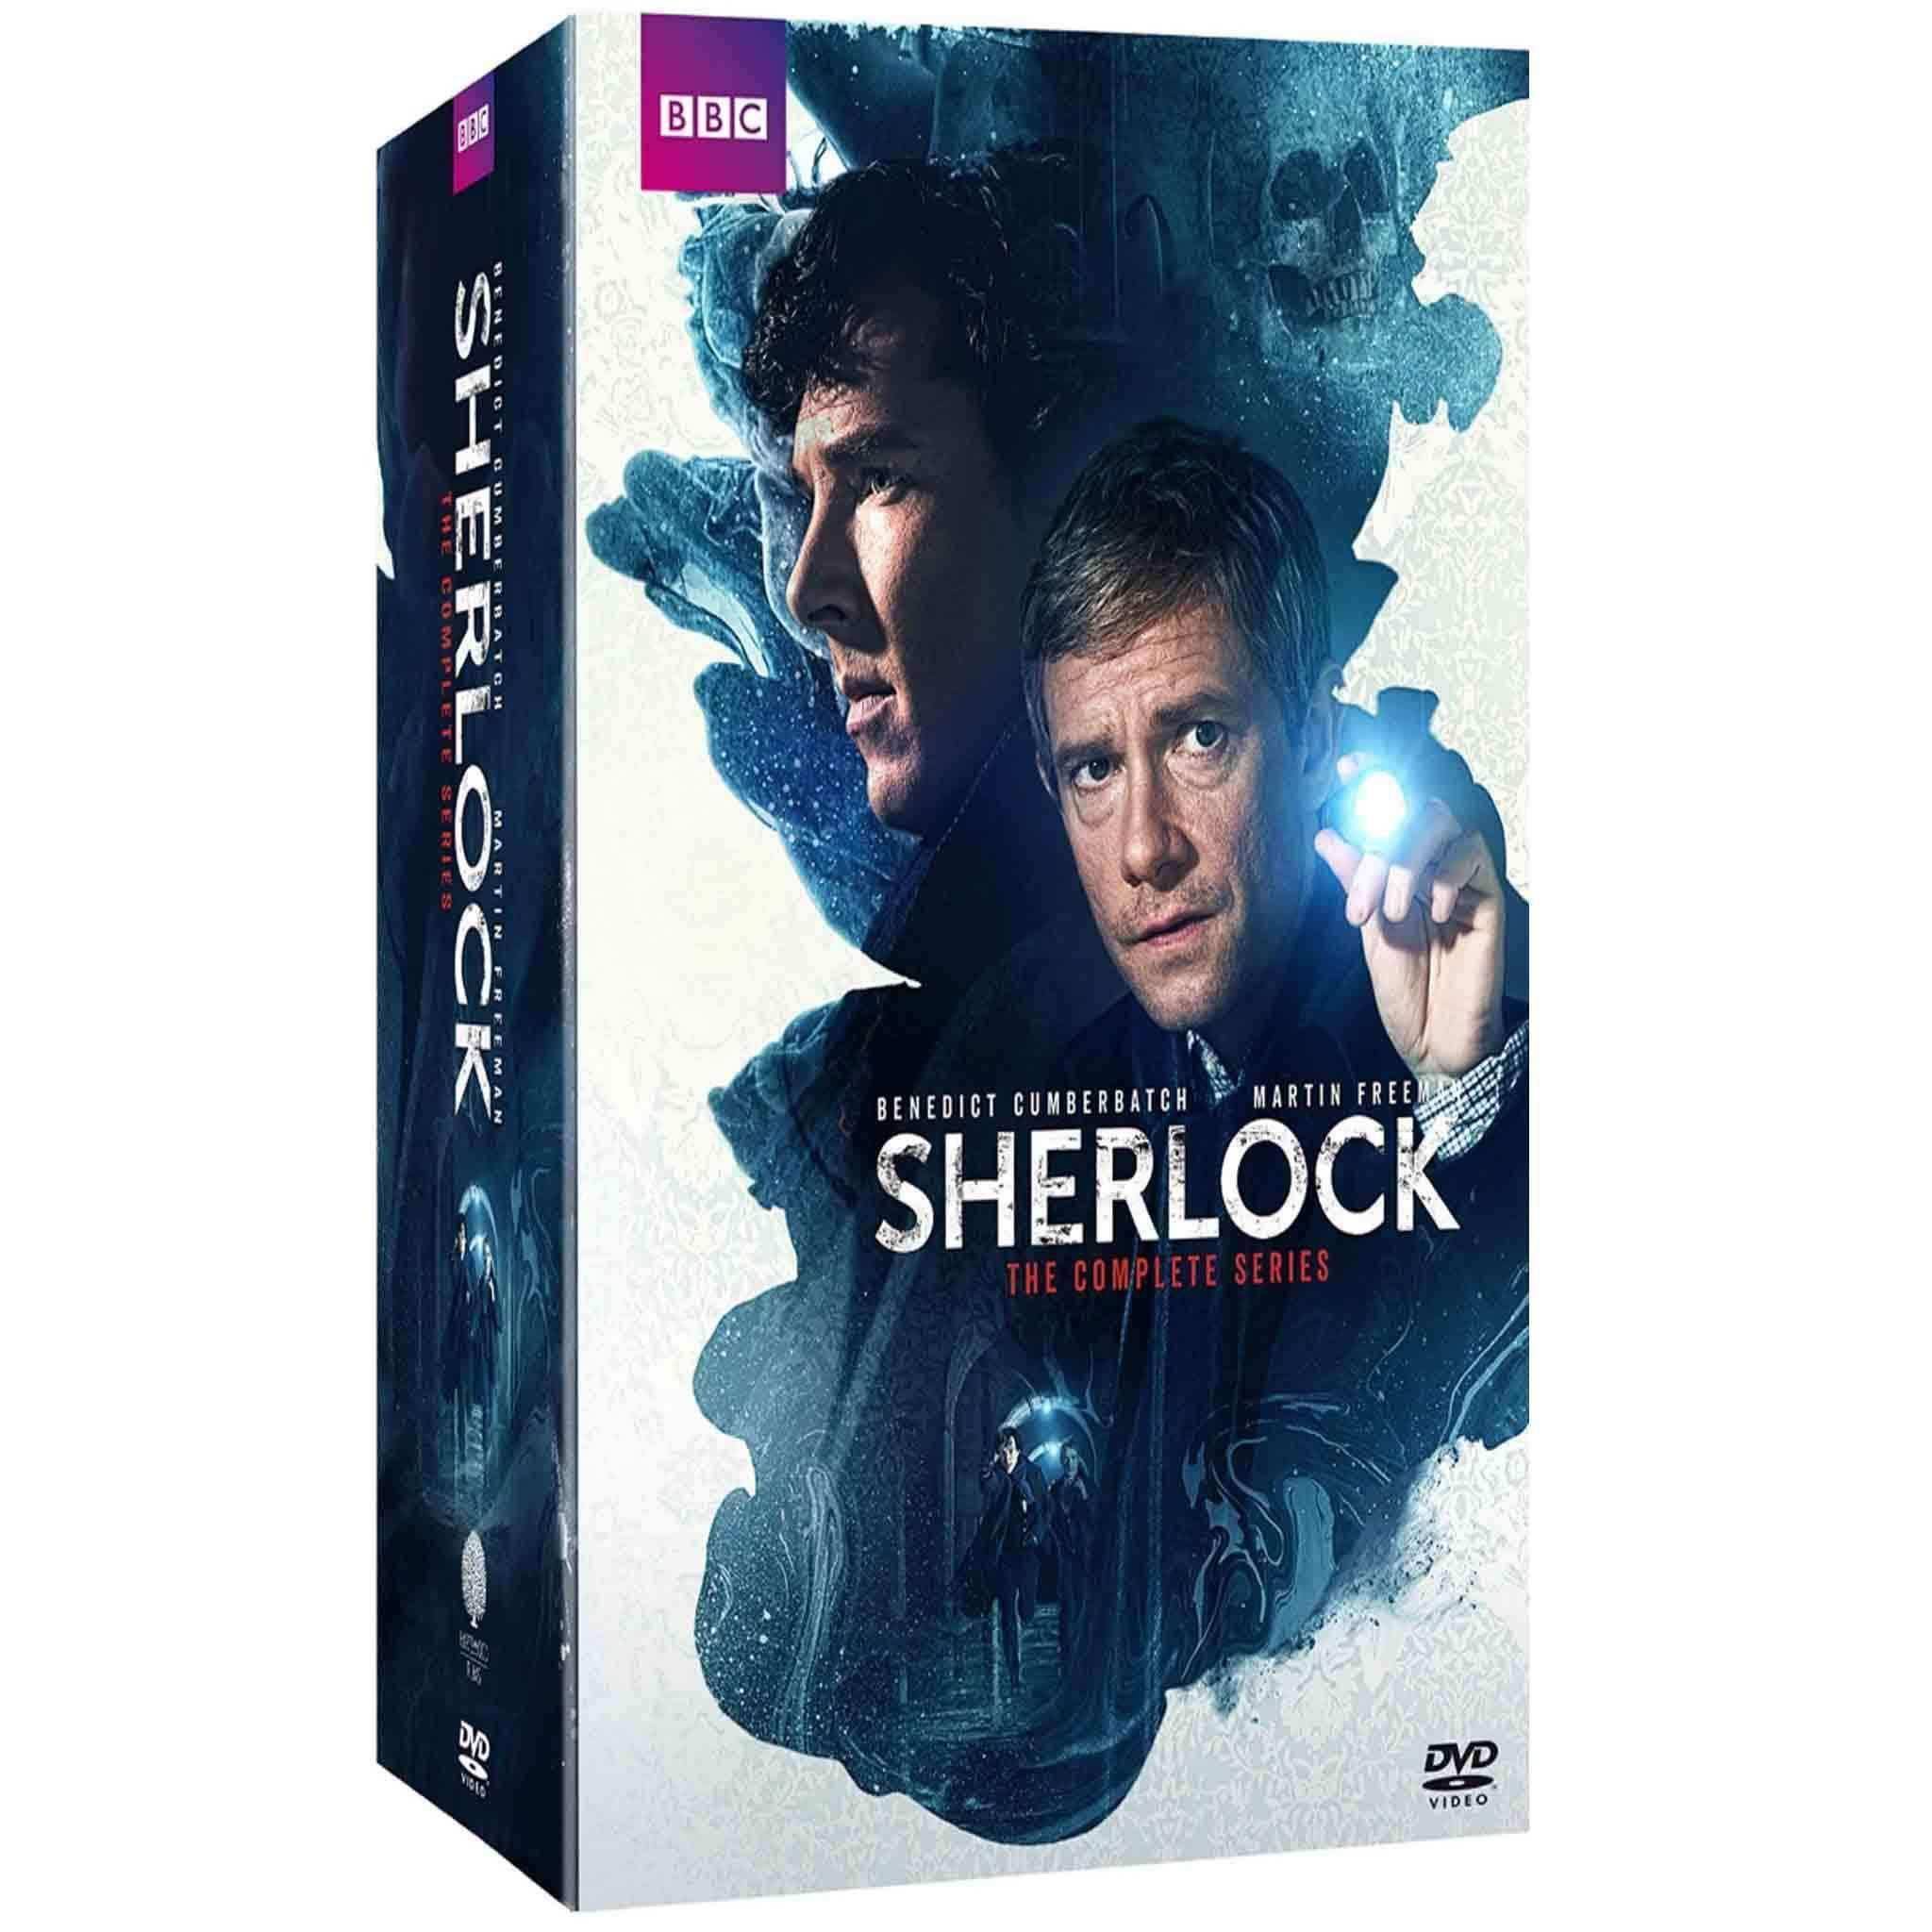 Sherlock DVD Complete Series Box Set BBC America DVDs & Blu-ray Discs > DVDs > Box Sets